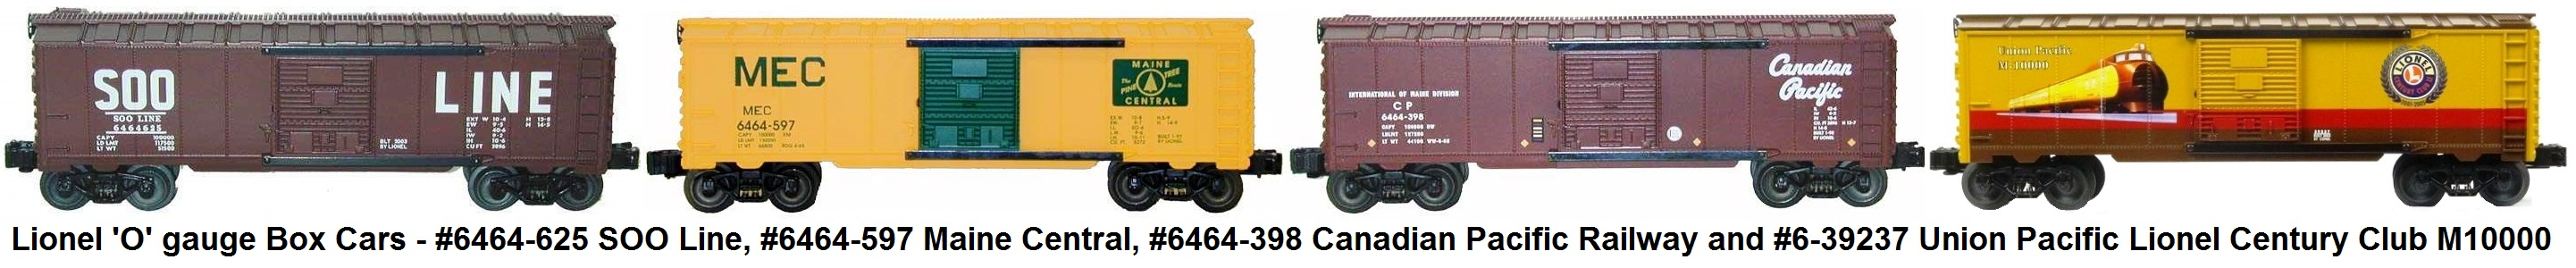 Lionel 'O' gauge #6464-625 SOO Line, #6464-597 Maine Central, #6464-398 Canadian Pacific and #6-39237 Union Pacific Lionel Century Club M10000 Box Cars